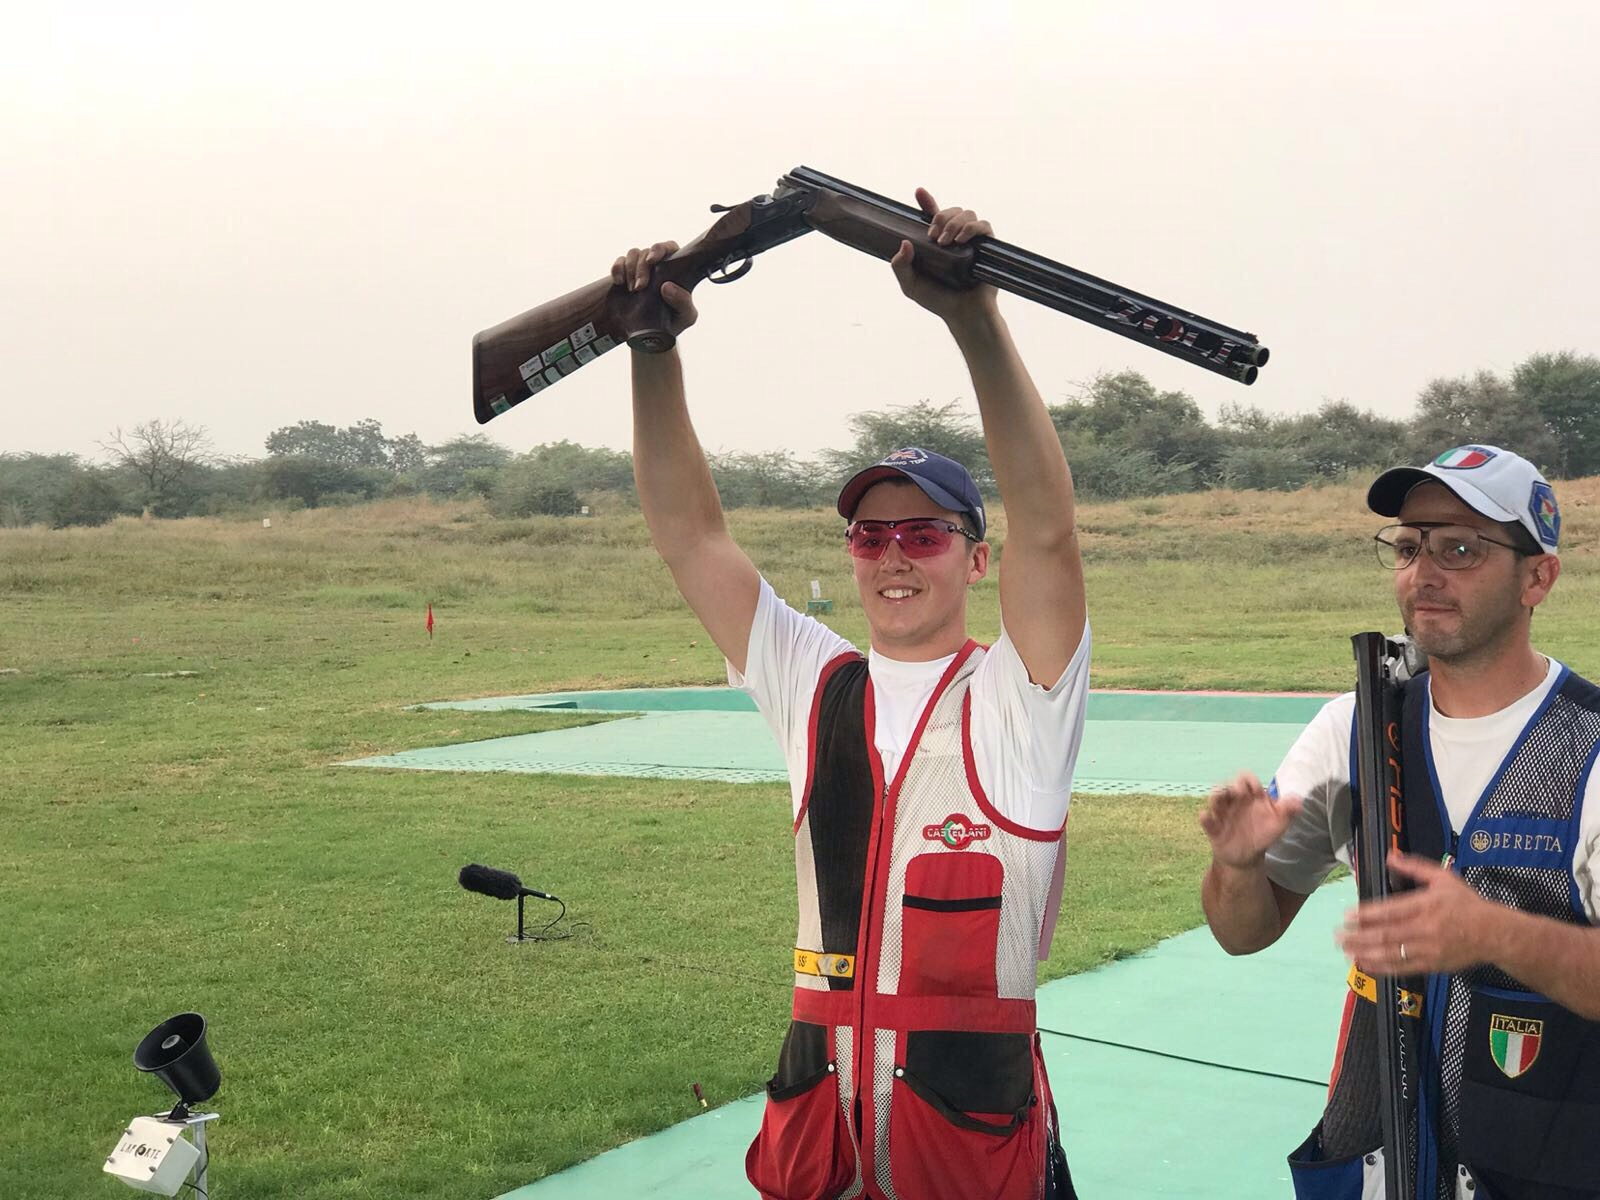 Ben Llewellin takes Silver at the ISSF World Cup in New Dehli